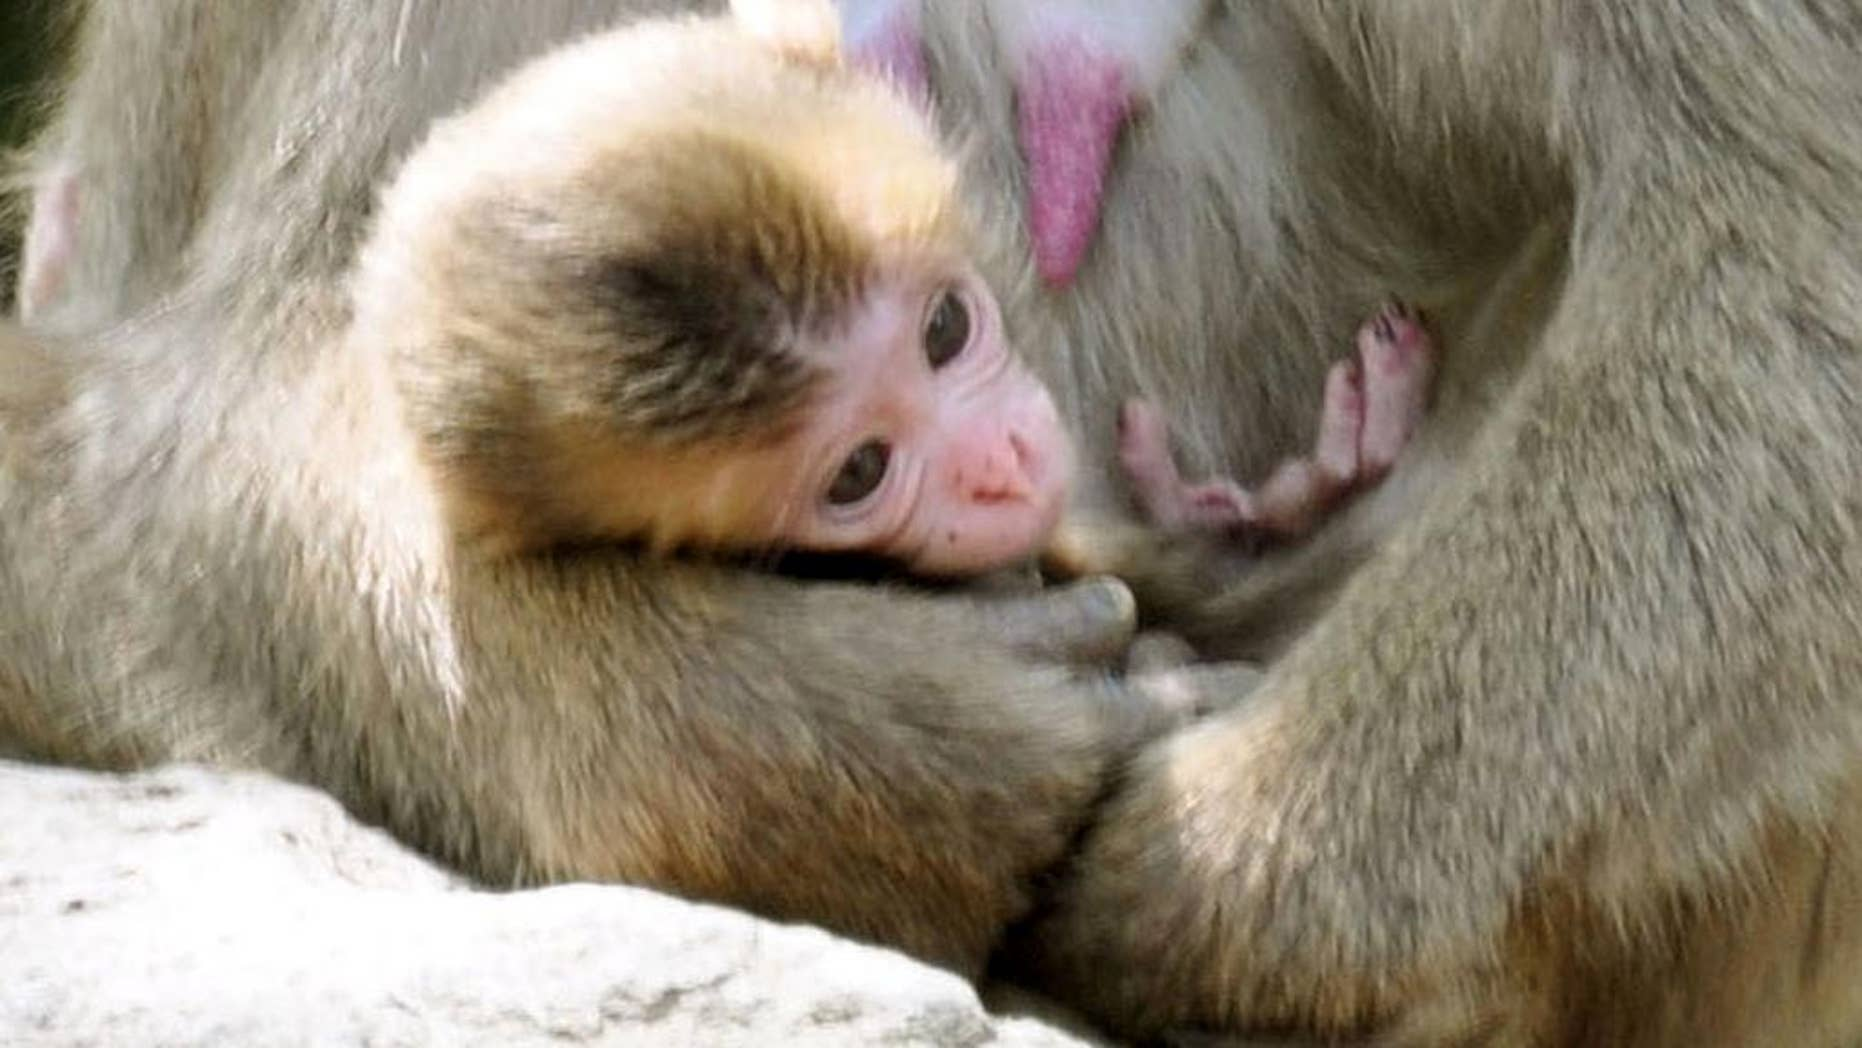 A newborn baby monkey named Charlotte clings to her mother at Takasakiyama Natural Zoological Garden in Oita, southern Japan Friday, May 8, 2015.  The monkey born in the Japanese zoo will keep its name Charlotte, after all.  Oita city officials settled a dayslong national debate over whether calling the monkey Charlotte offends its British royal namesake. The officials say they will stick to their first choice because there was no protest from Britain's royal family. (Kyodo News via AP) JAPAN OUT, CREDIT MANDATORY